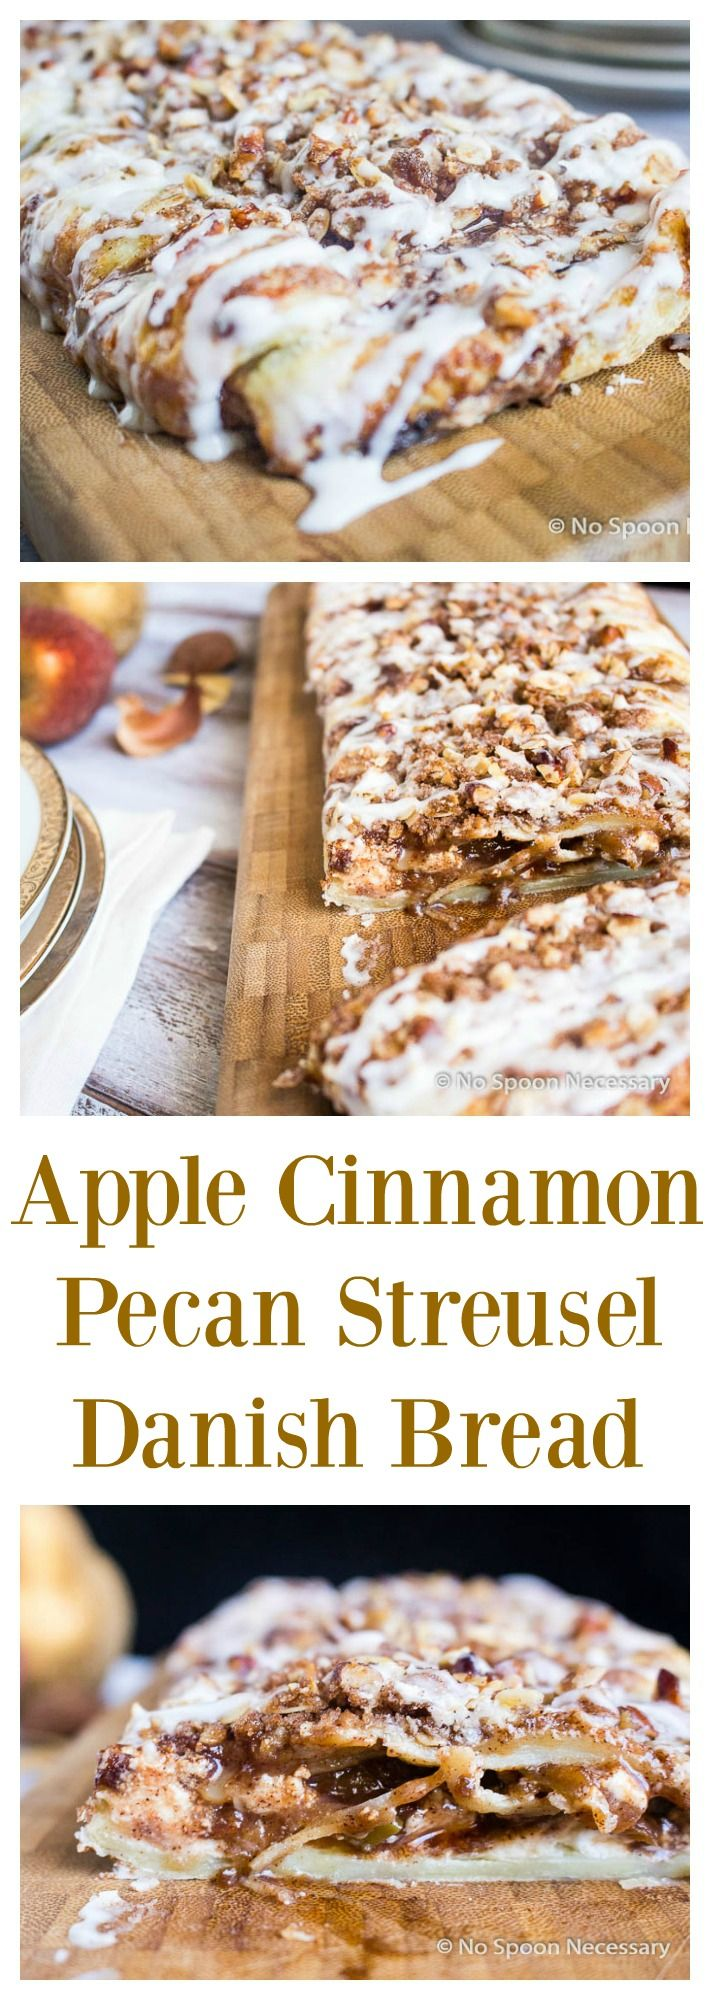 Apple Cinnamon Pecan Cream Cheese Danish Bread - A Spin on Entenmann's Raspberry Danish Twist.